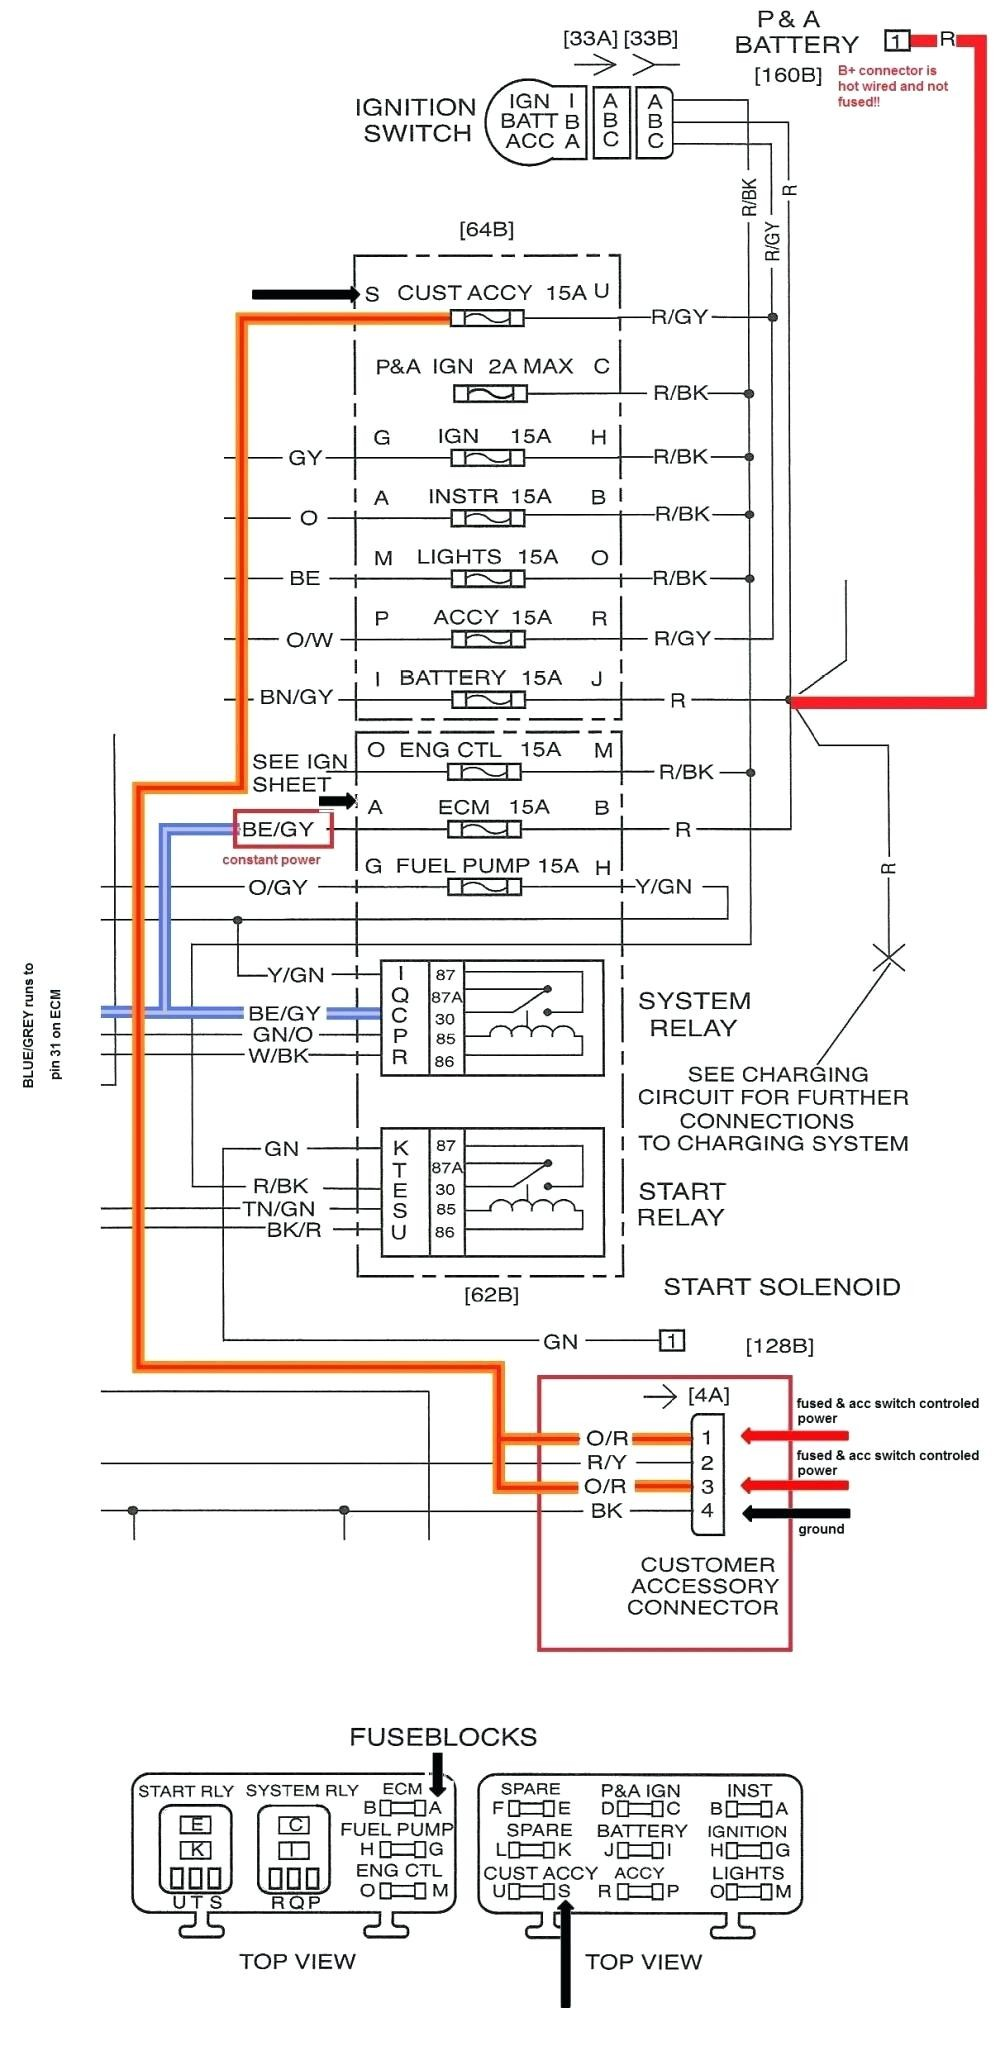 [DIAGRAM_5FD]  3F011C Wiring Diagram For 2007 Harley Street Glide | Wiring Resources | 2007 Harley Road King Wiring Diagram |  | Wiring Resources